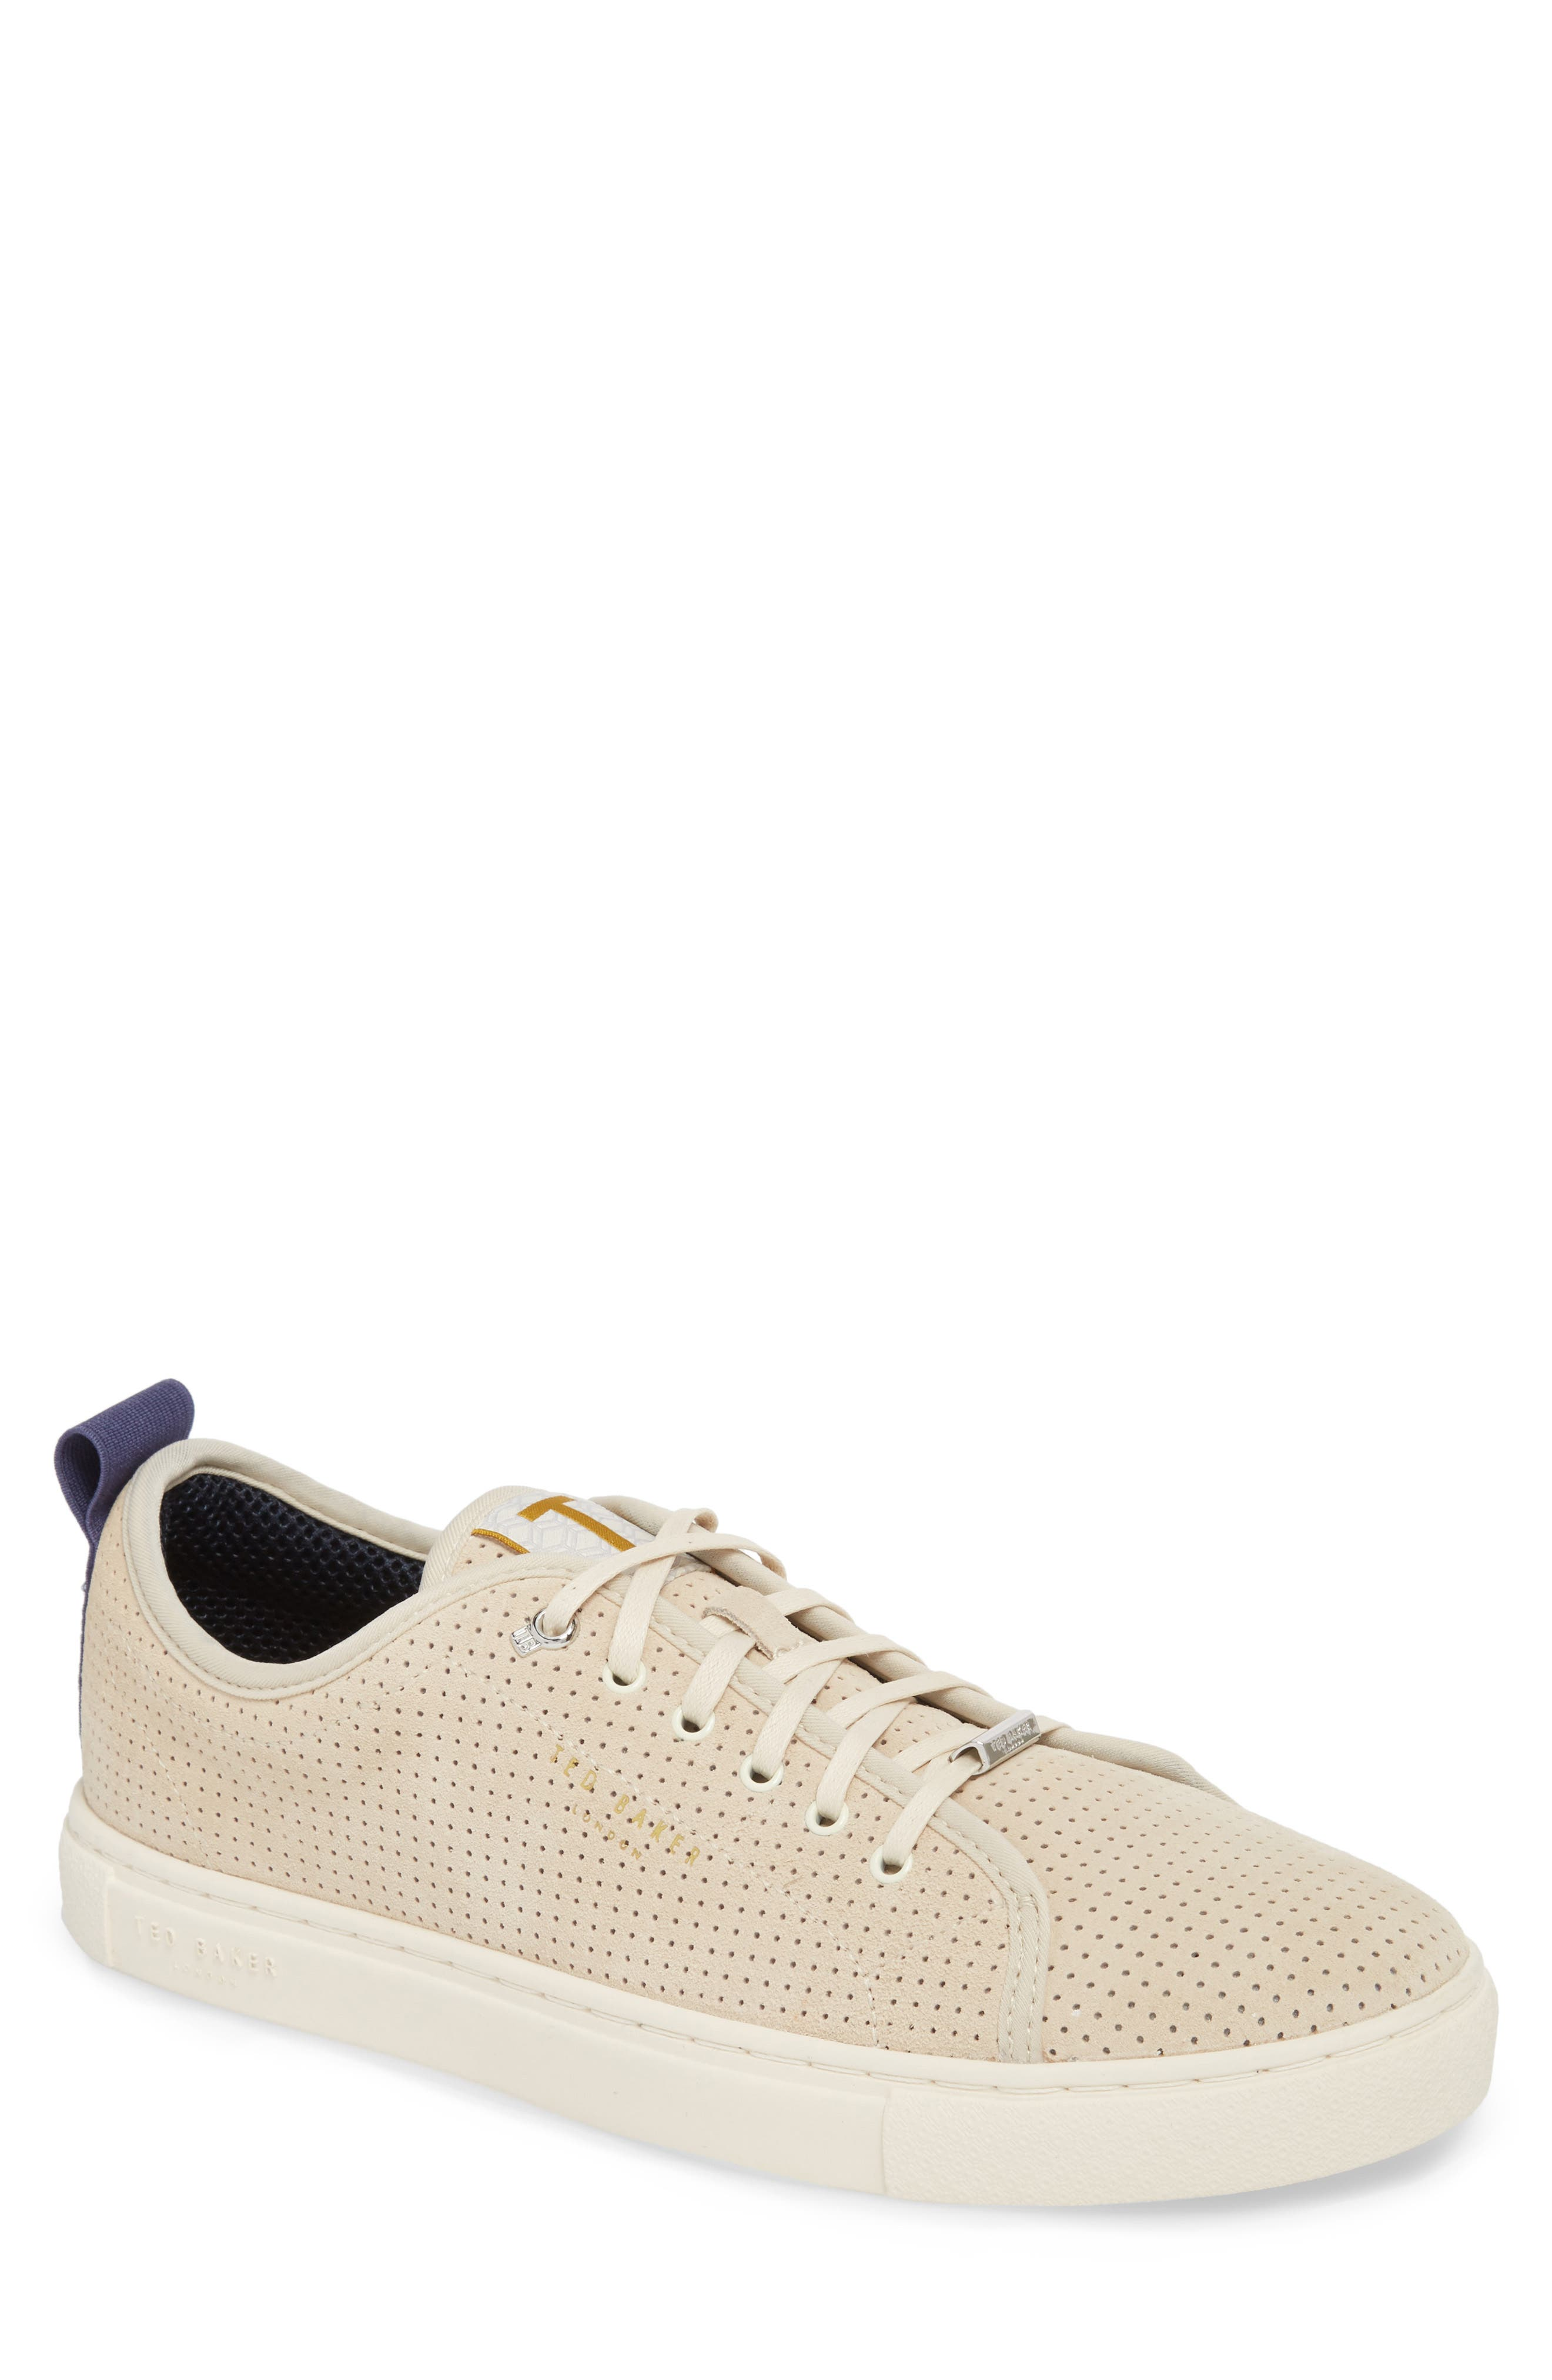 Ted Baker Men's Kaliix Perforated Low Top Sneaker qrcej9v17Q